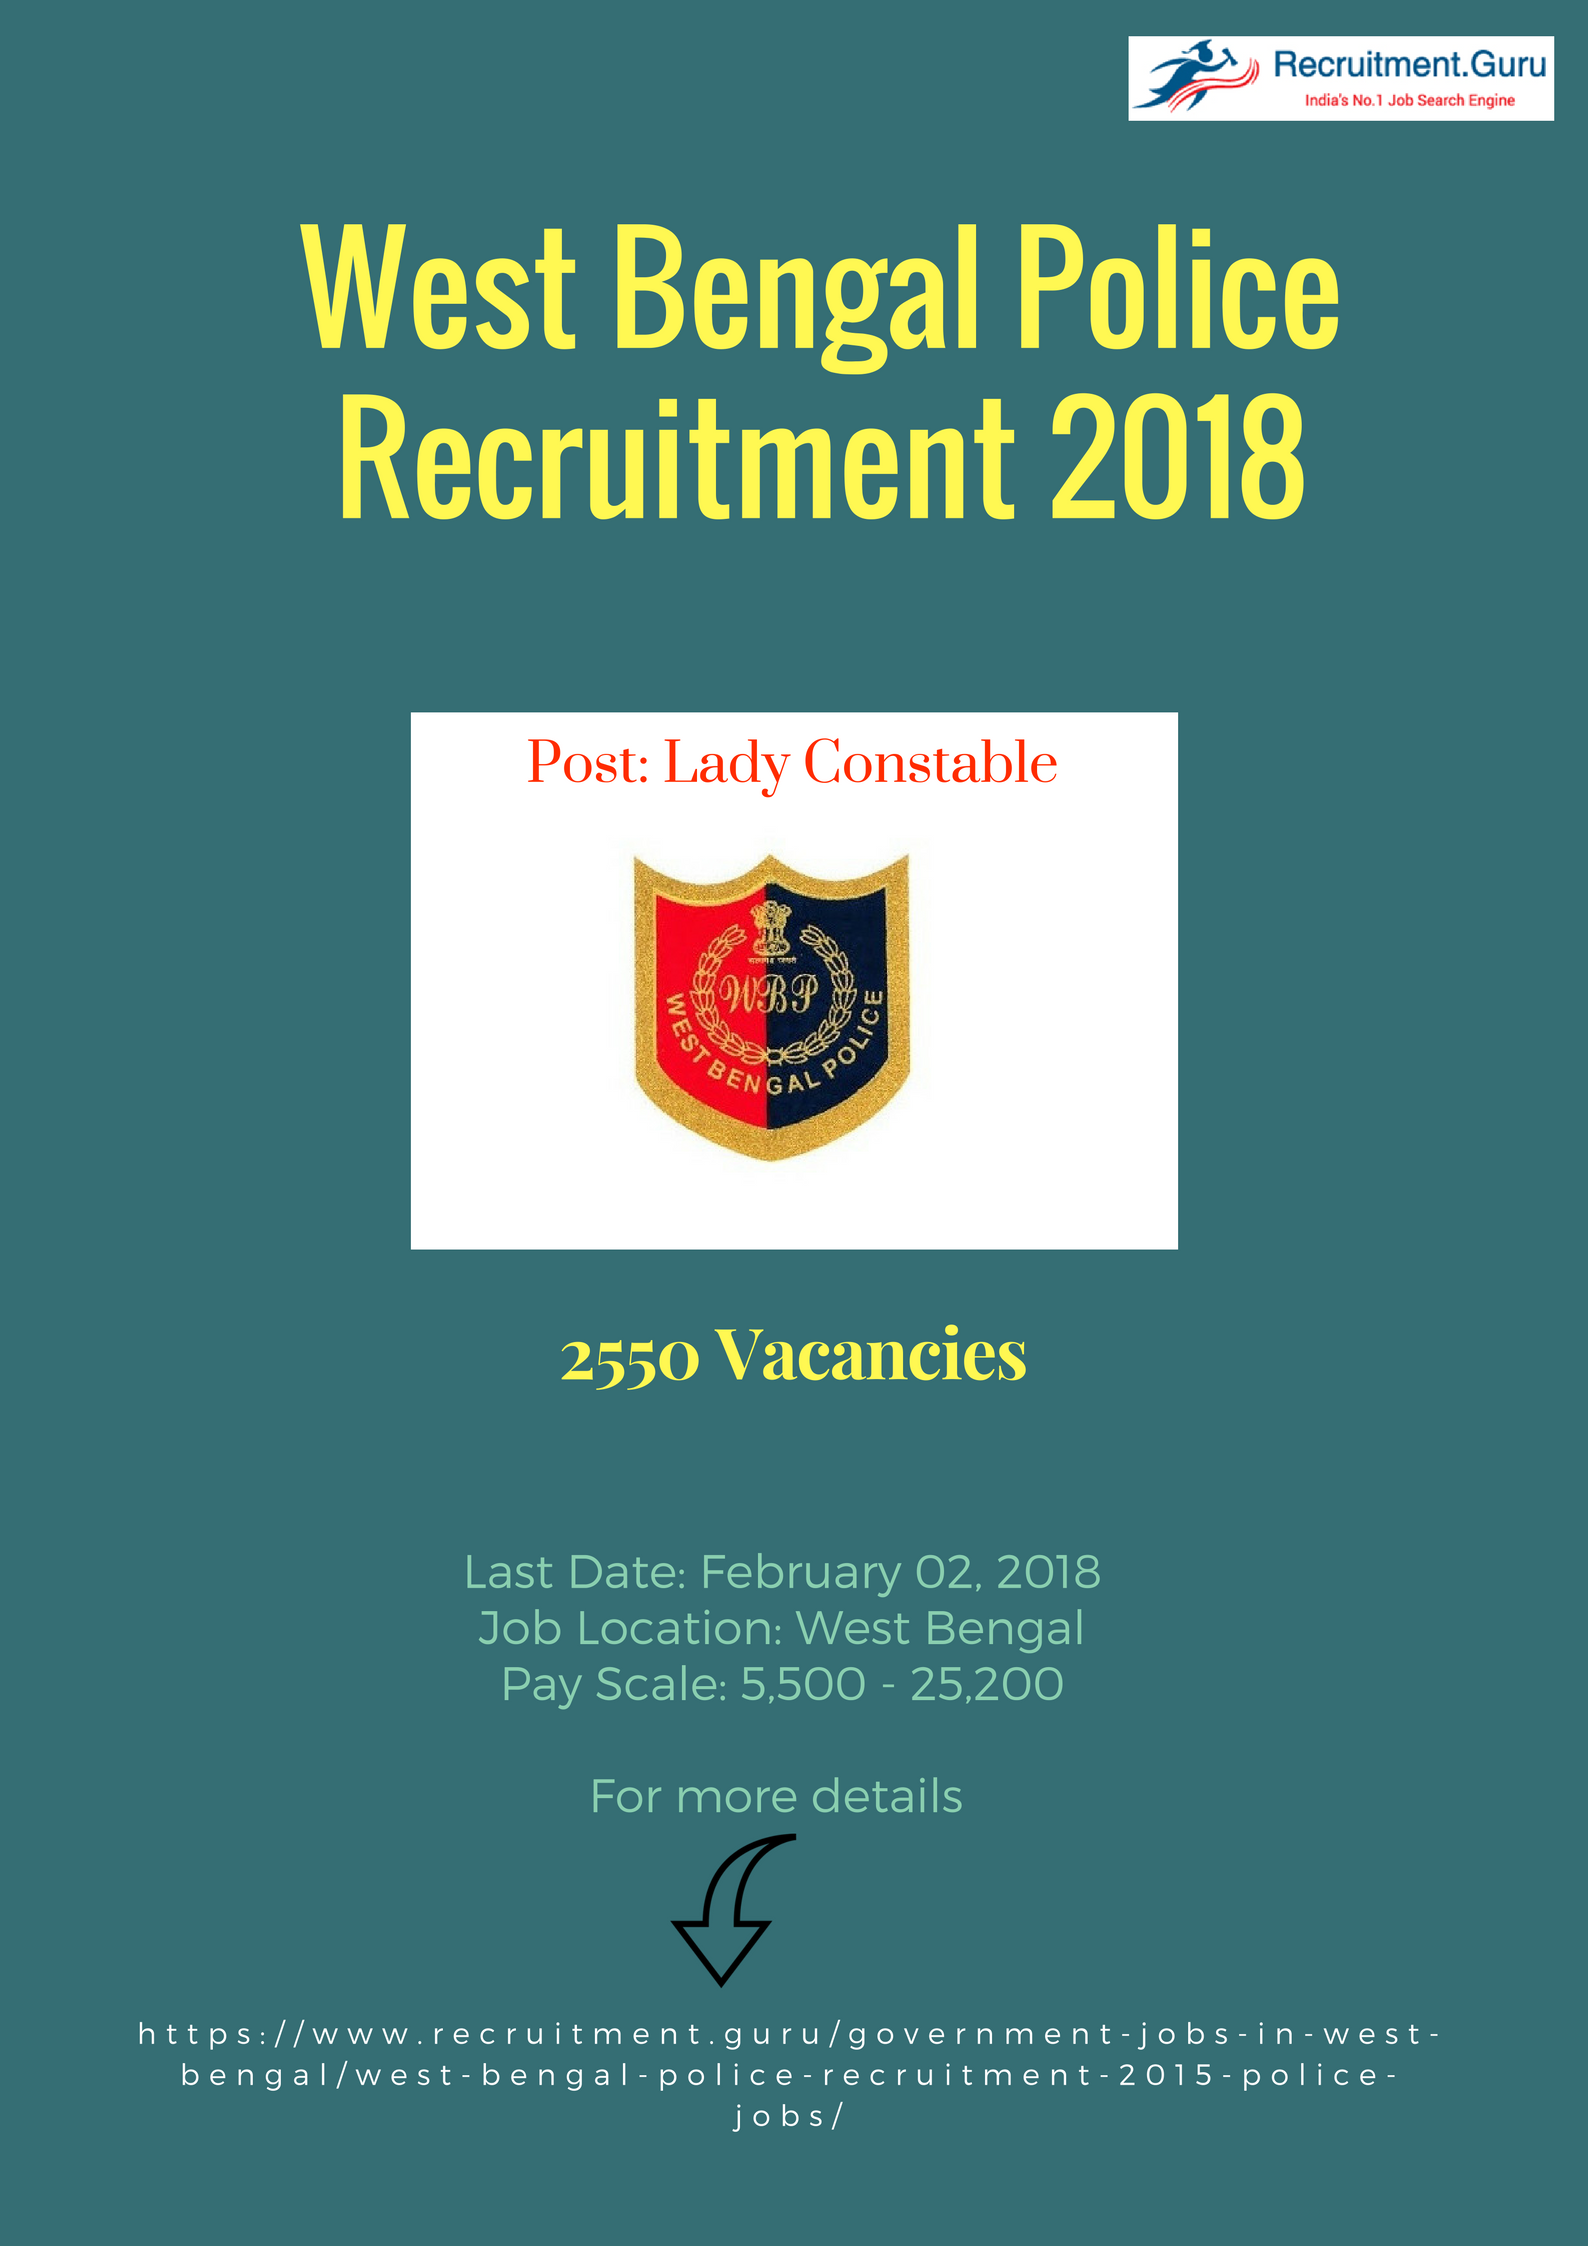 West Bengal Police Recruitment 2018 Notification out  Apply